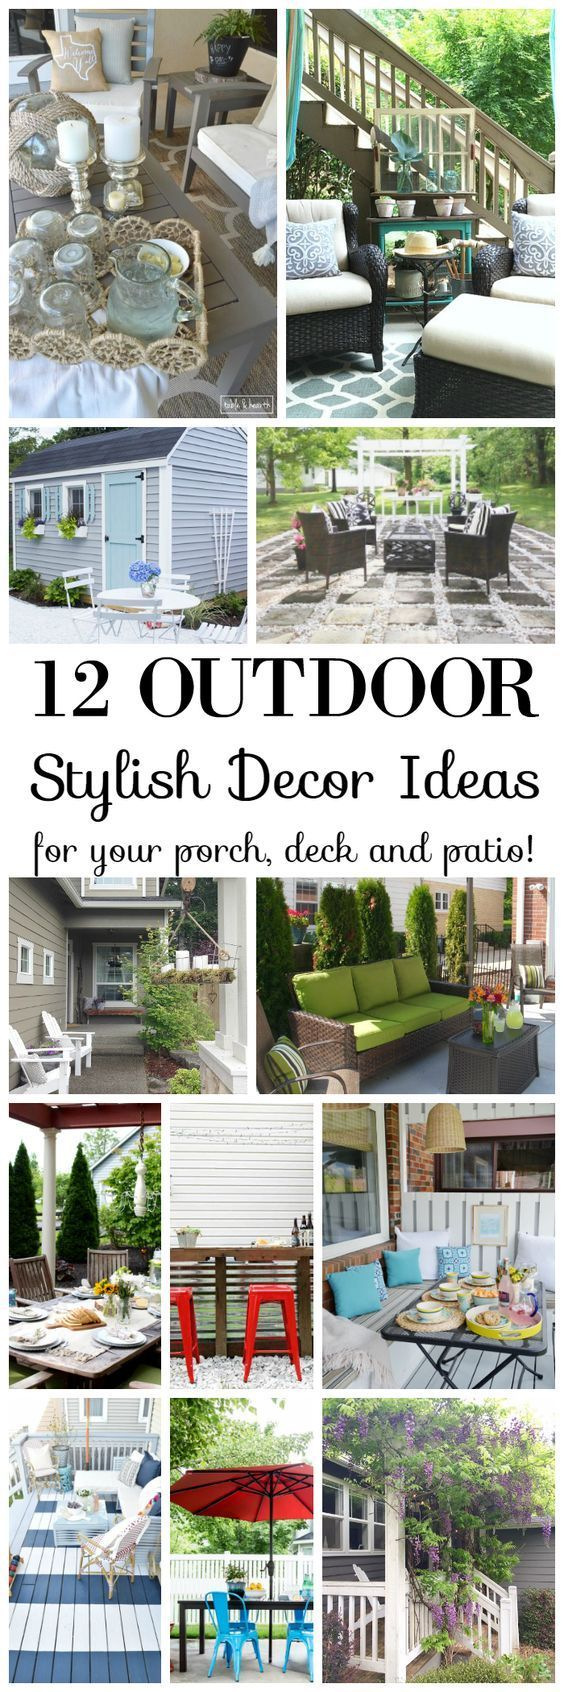 12 stylish porch deck and patio decor ideas porch Relaxed backyard deck ideas